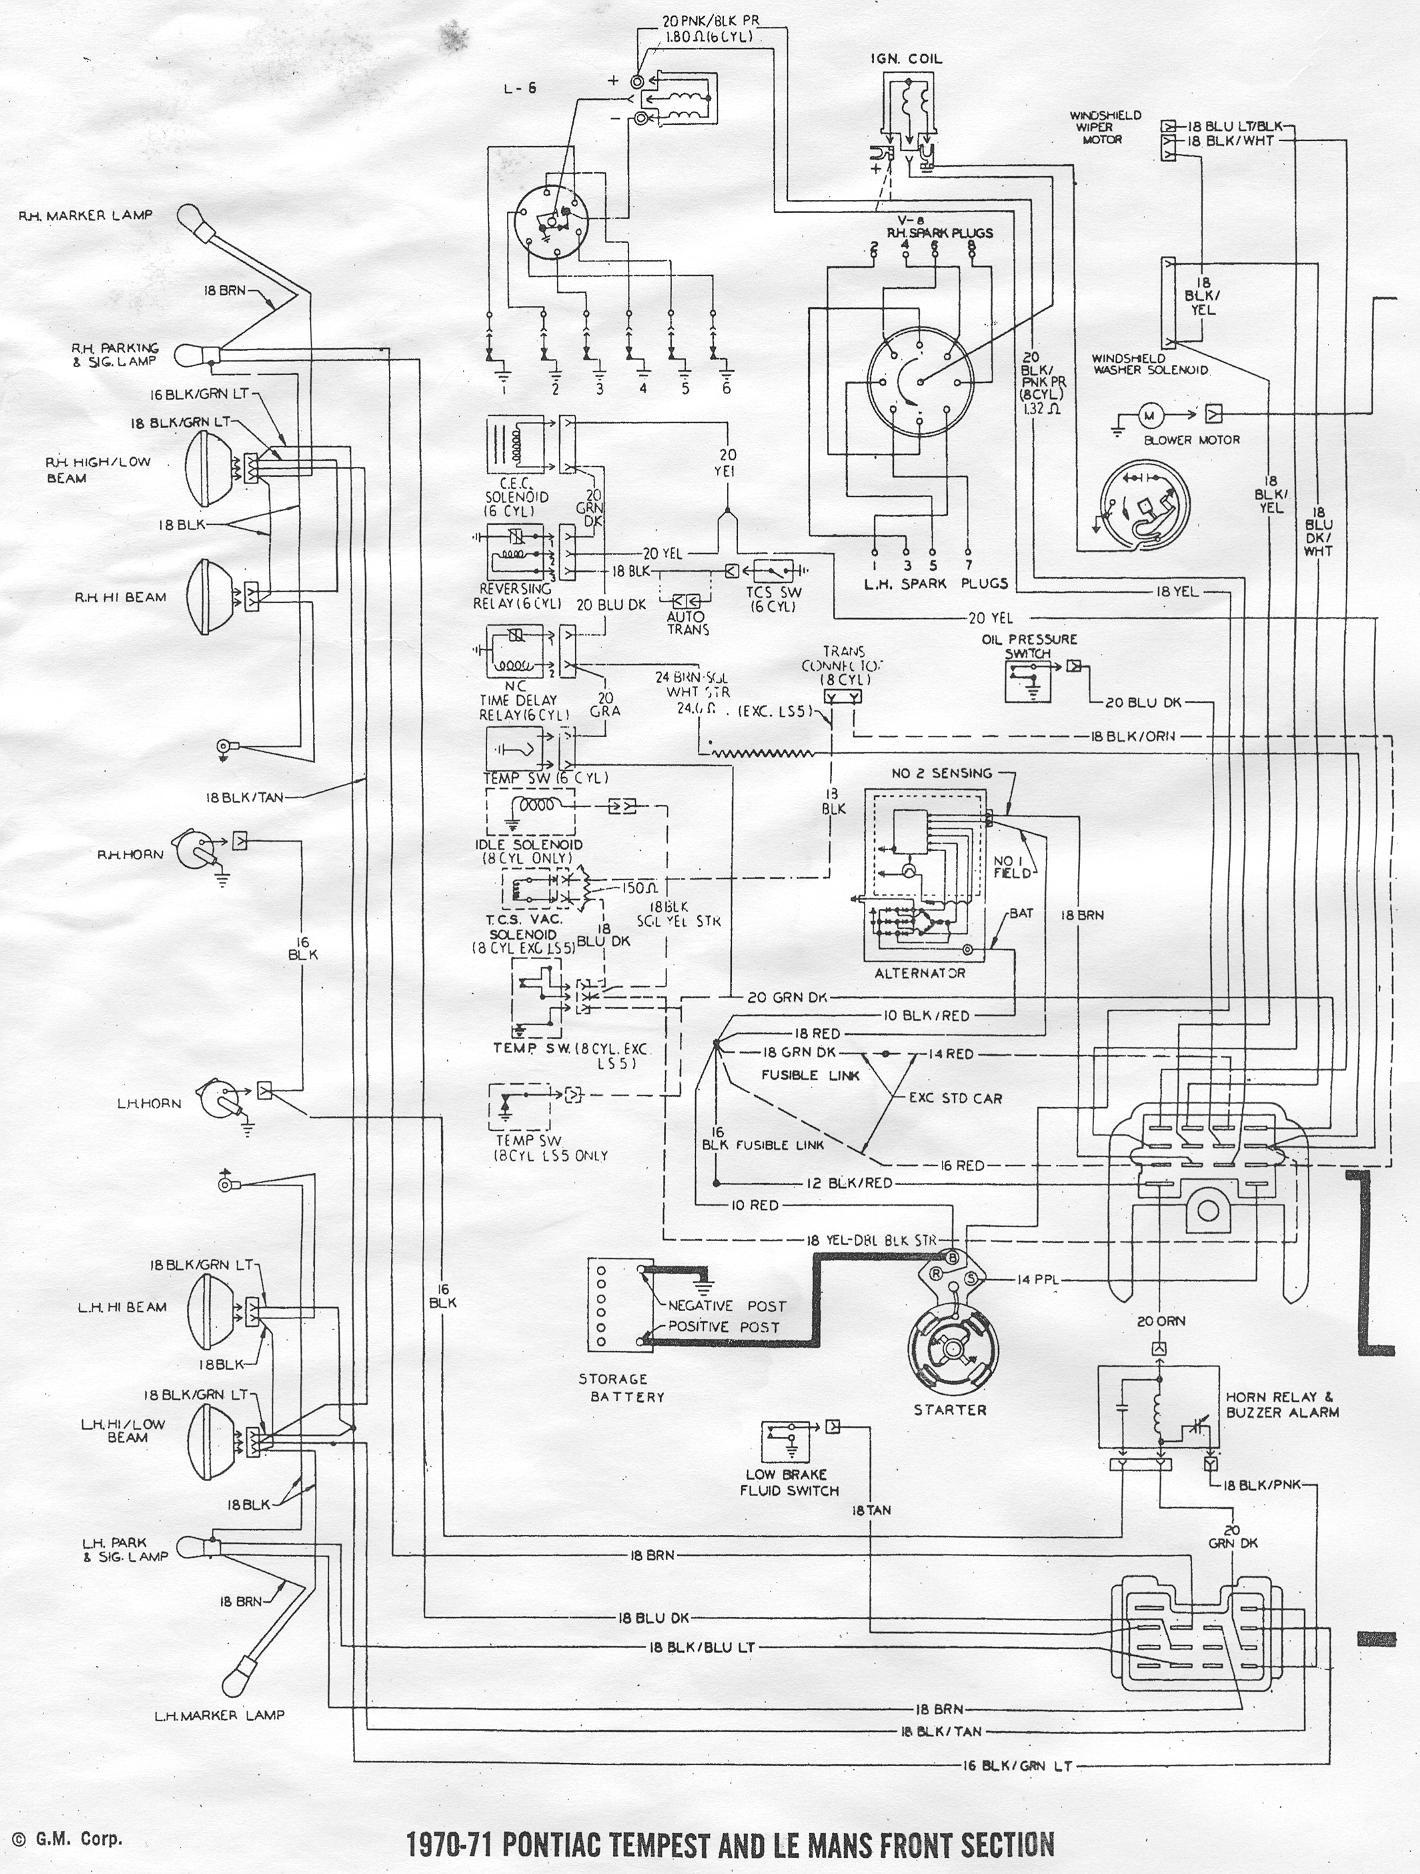 1972 chevelle horn relay wiring diagram. 1972. free wiring diagrams,Wiring diagram,Wiring Diagram Turn Signal 1972 Corvette